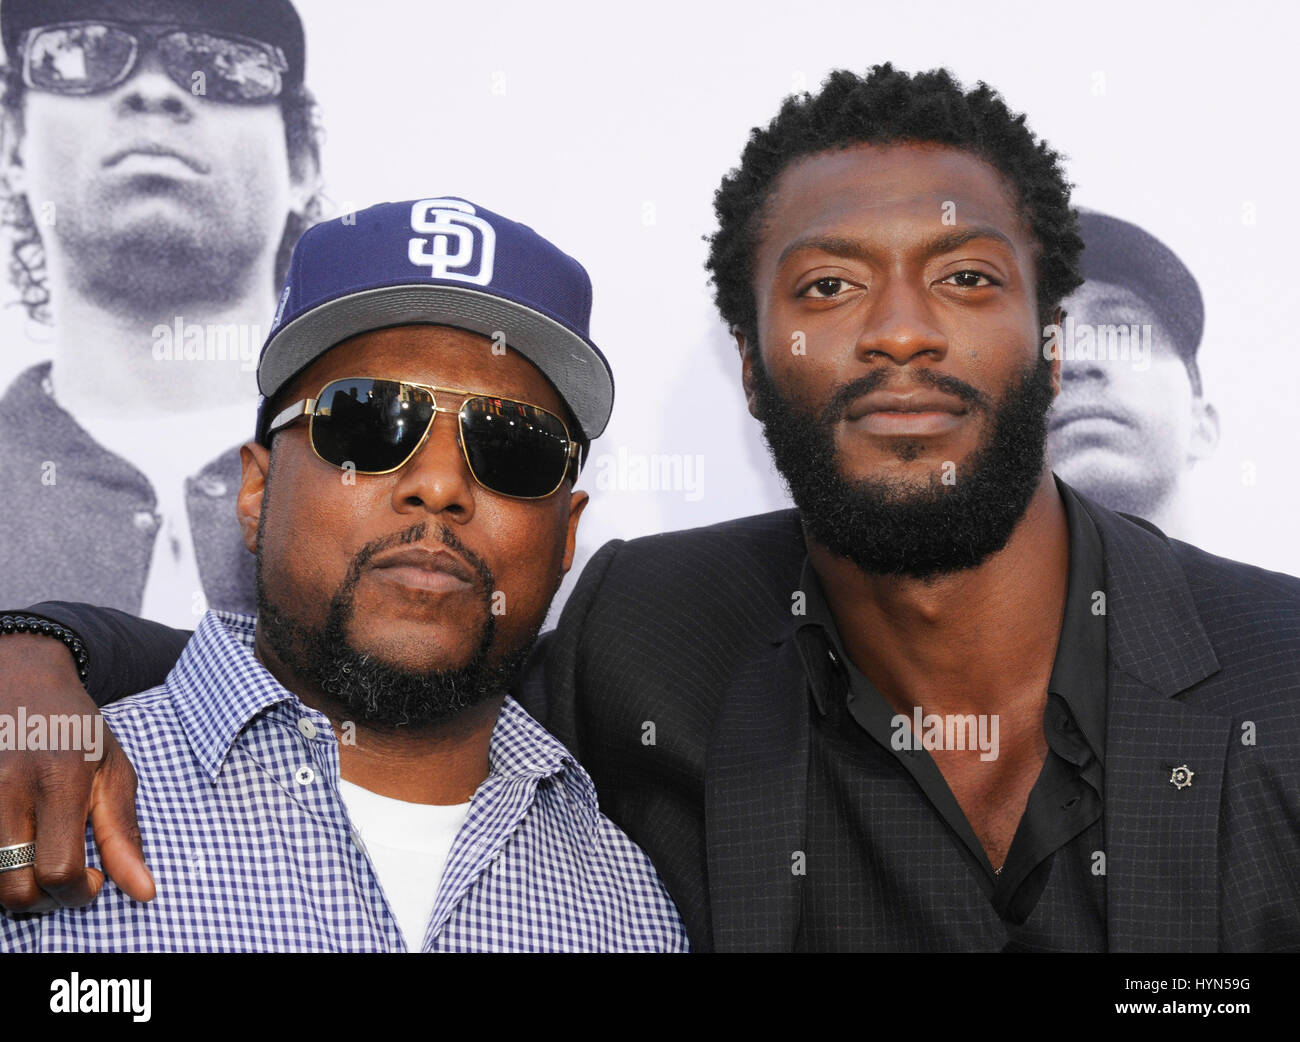 mc ren stock photos mc ren stock images alamy